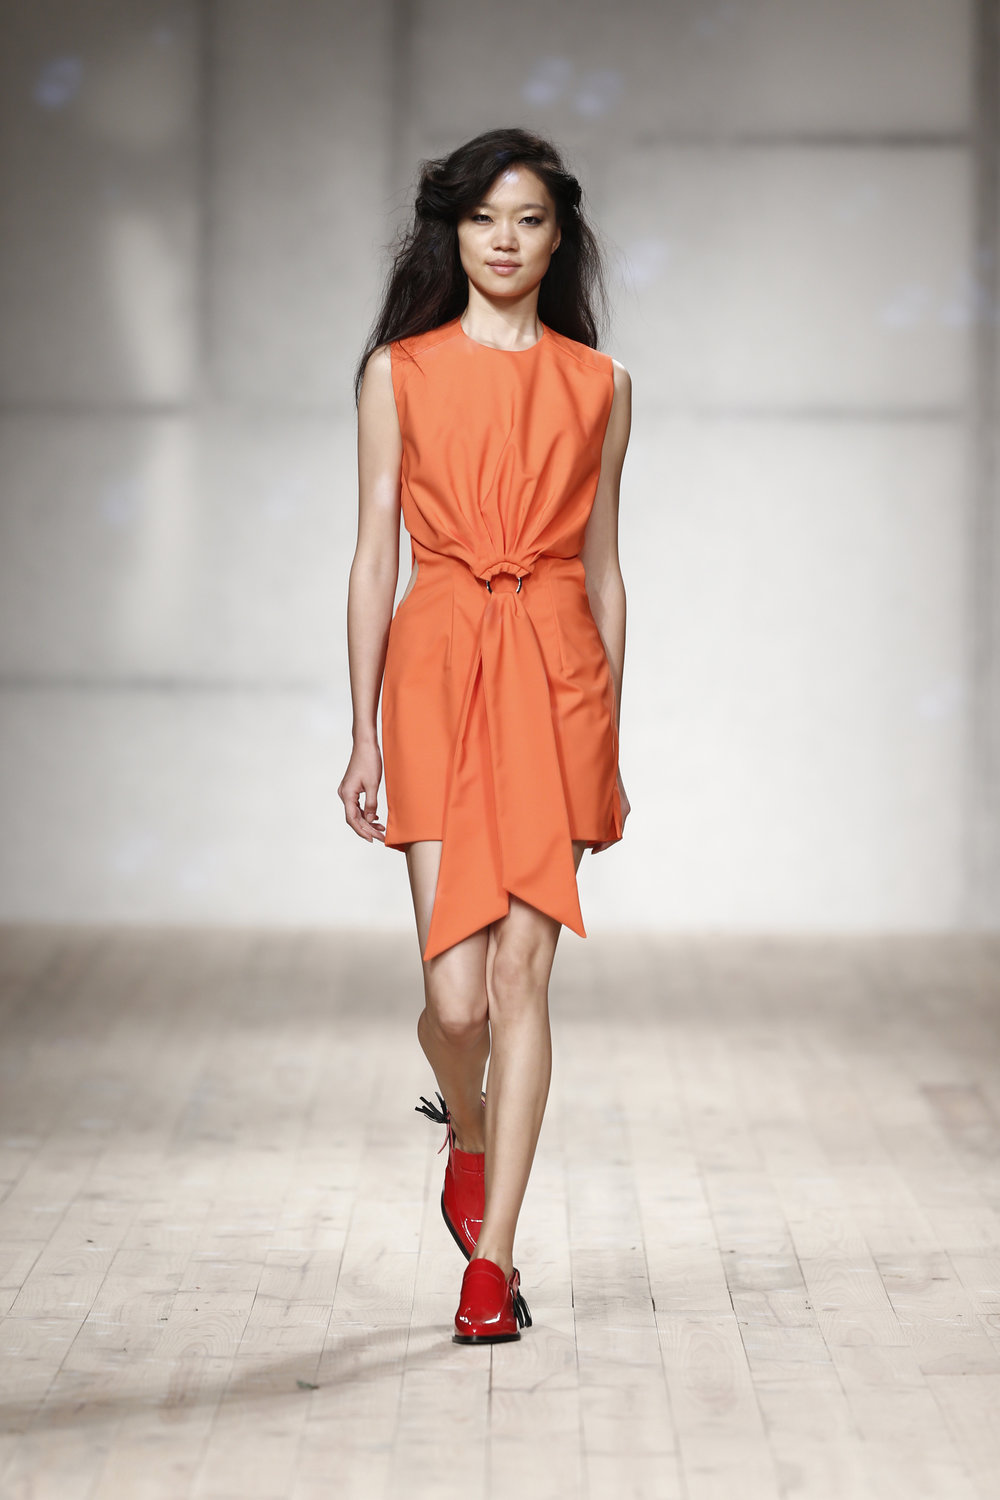 coral ring short dress  One available size 36 Original Price 440€ | Discount Price 220€ Ref. LCss17s26